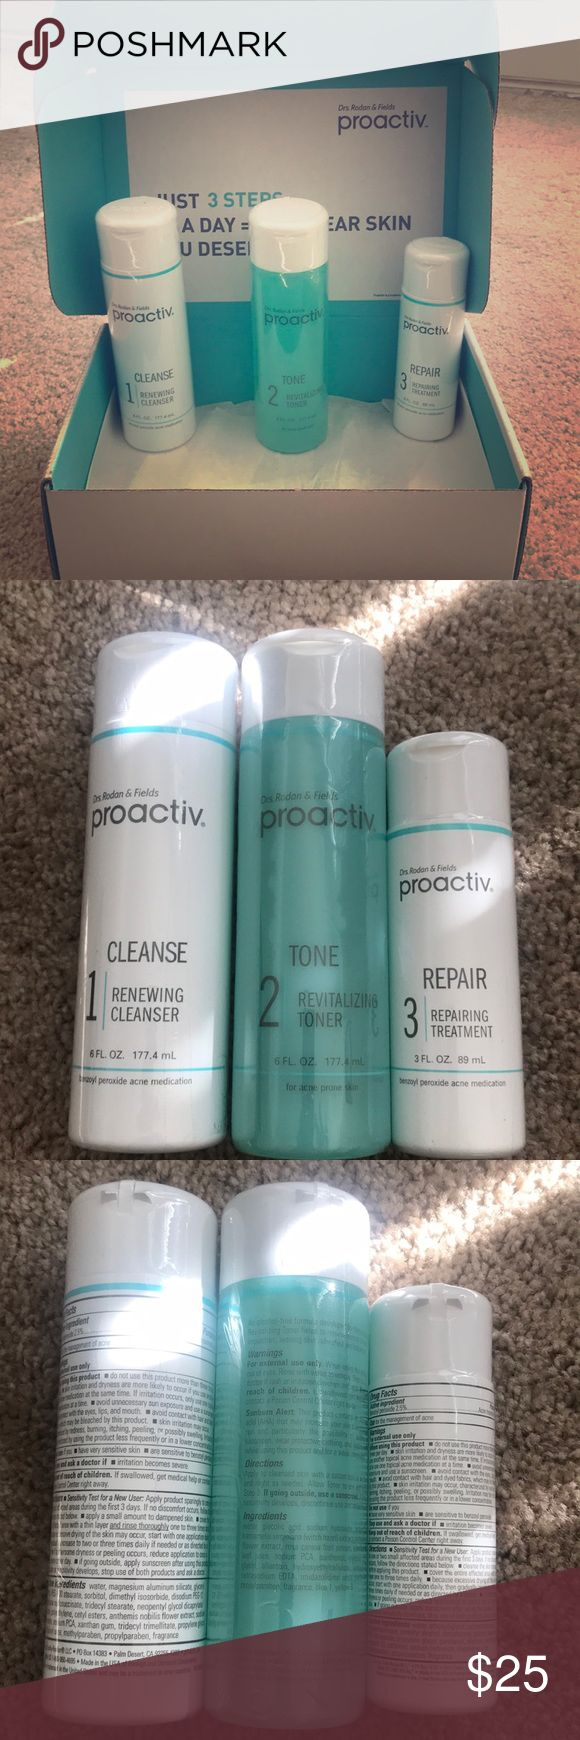 Proactive kit Acne-fighting system to help maintain clearer, more radiant skin! Never used! Have a total of 3 sets! Will sell set individually! Proactiv Makeup